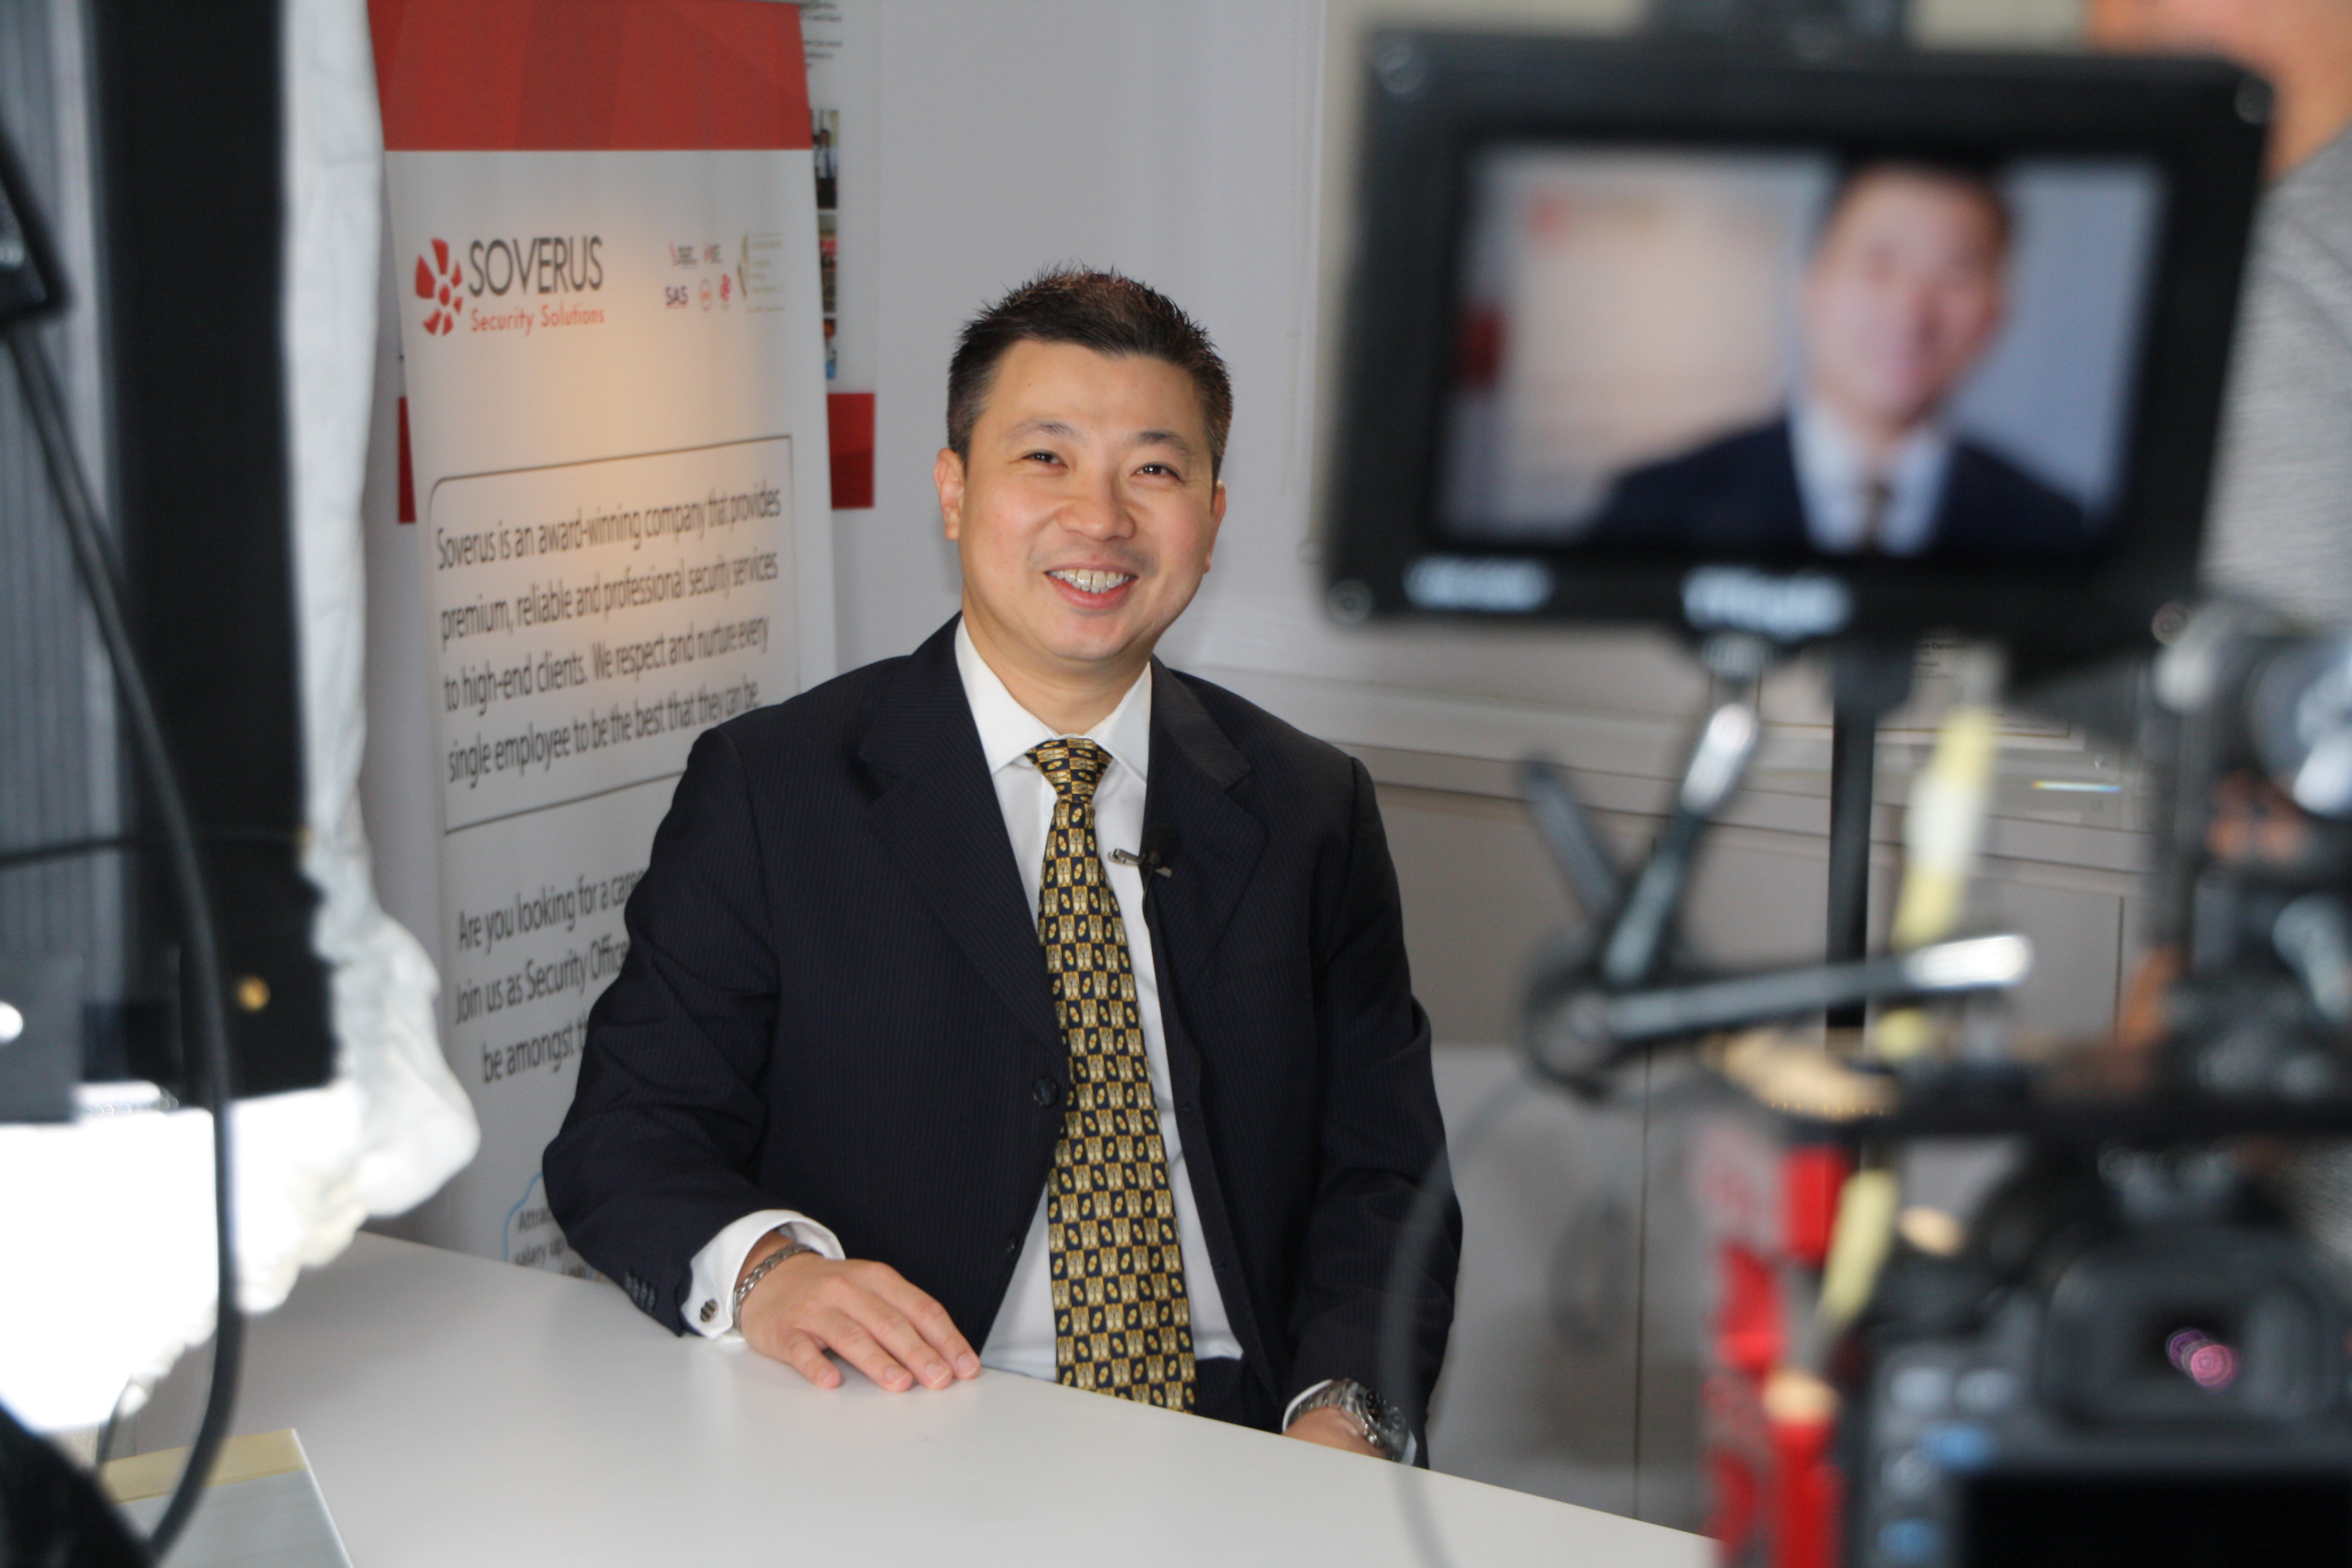 Channel News Asia - Soverus Private Limited